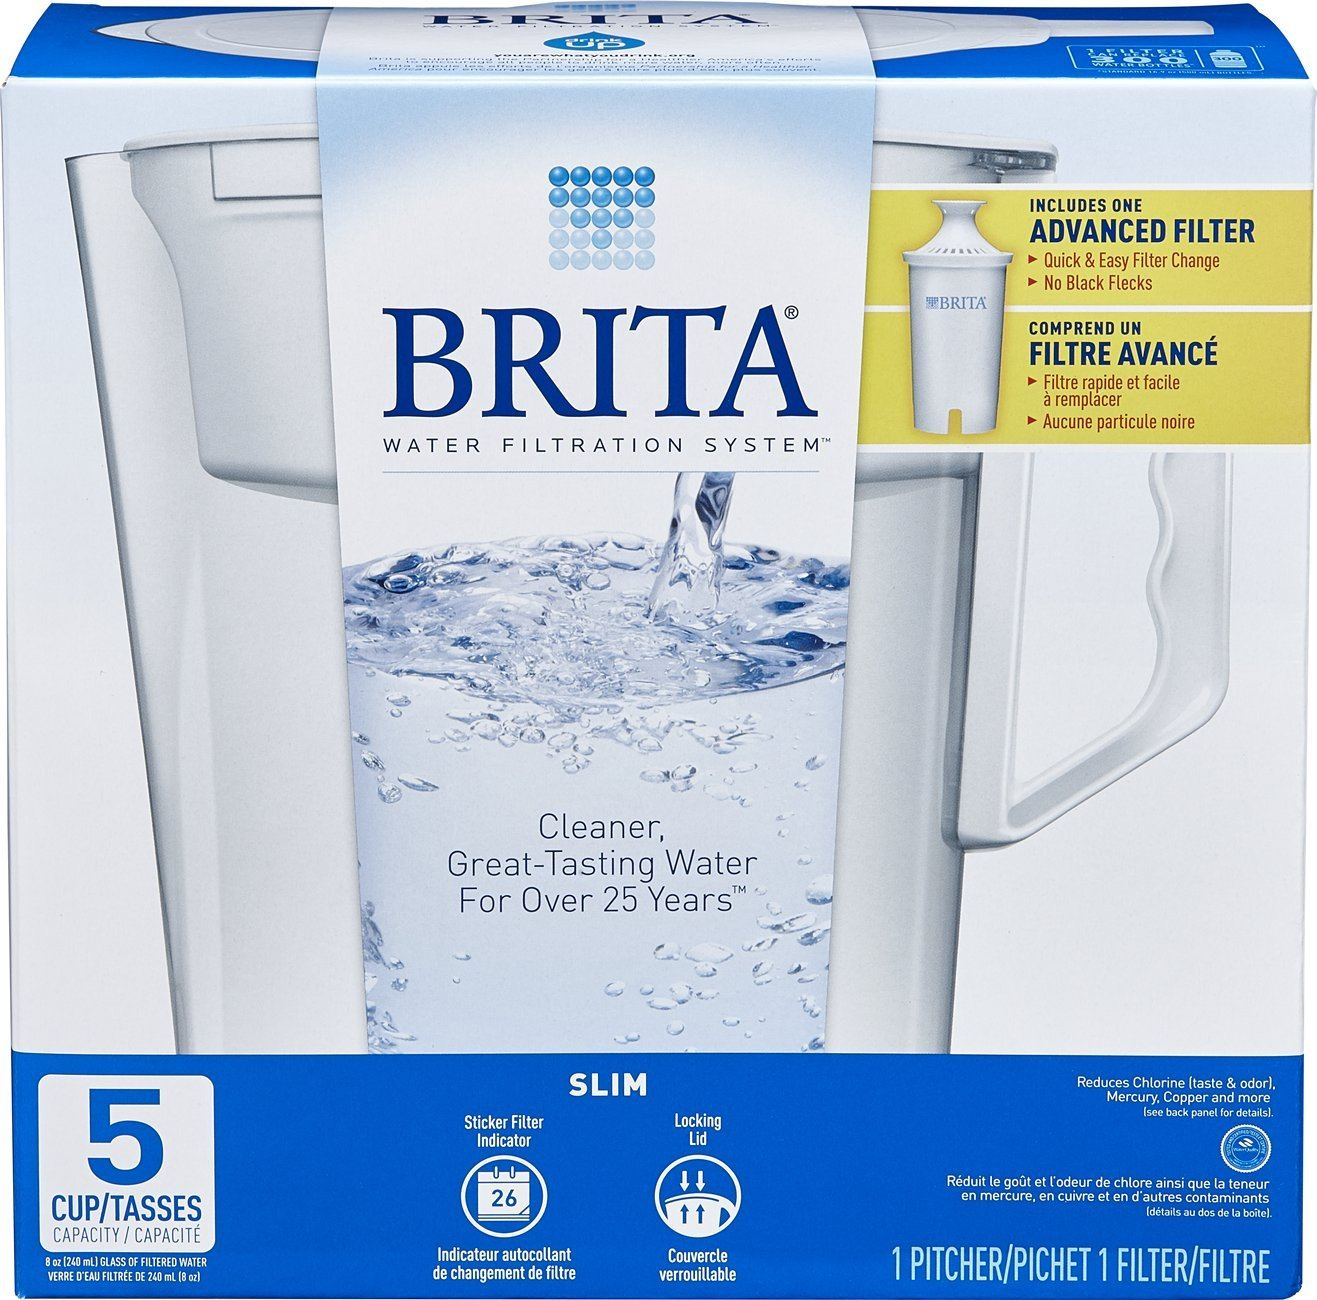 Brita water filter ad Campaign Brita Cup Slim Water Pitcher With Filter For Only 619 Amazoncom Brita Cup Slim Water Pitcher With Filter For Only 619 Hot